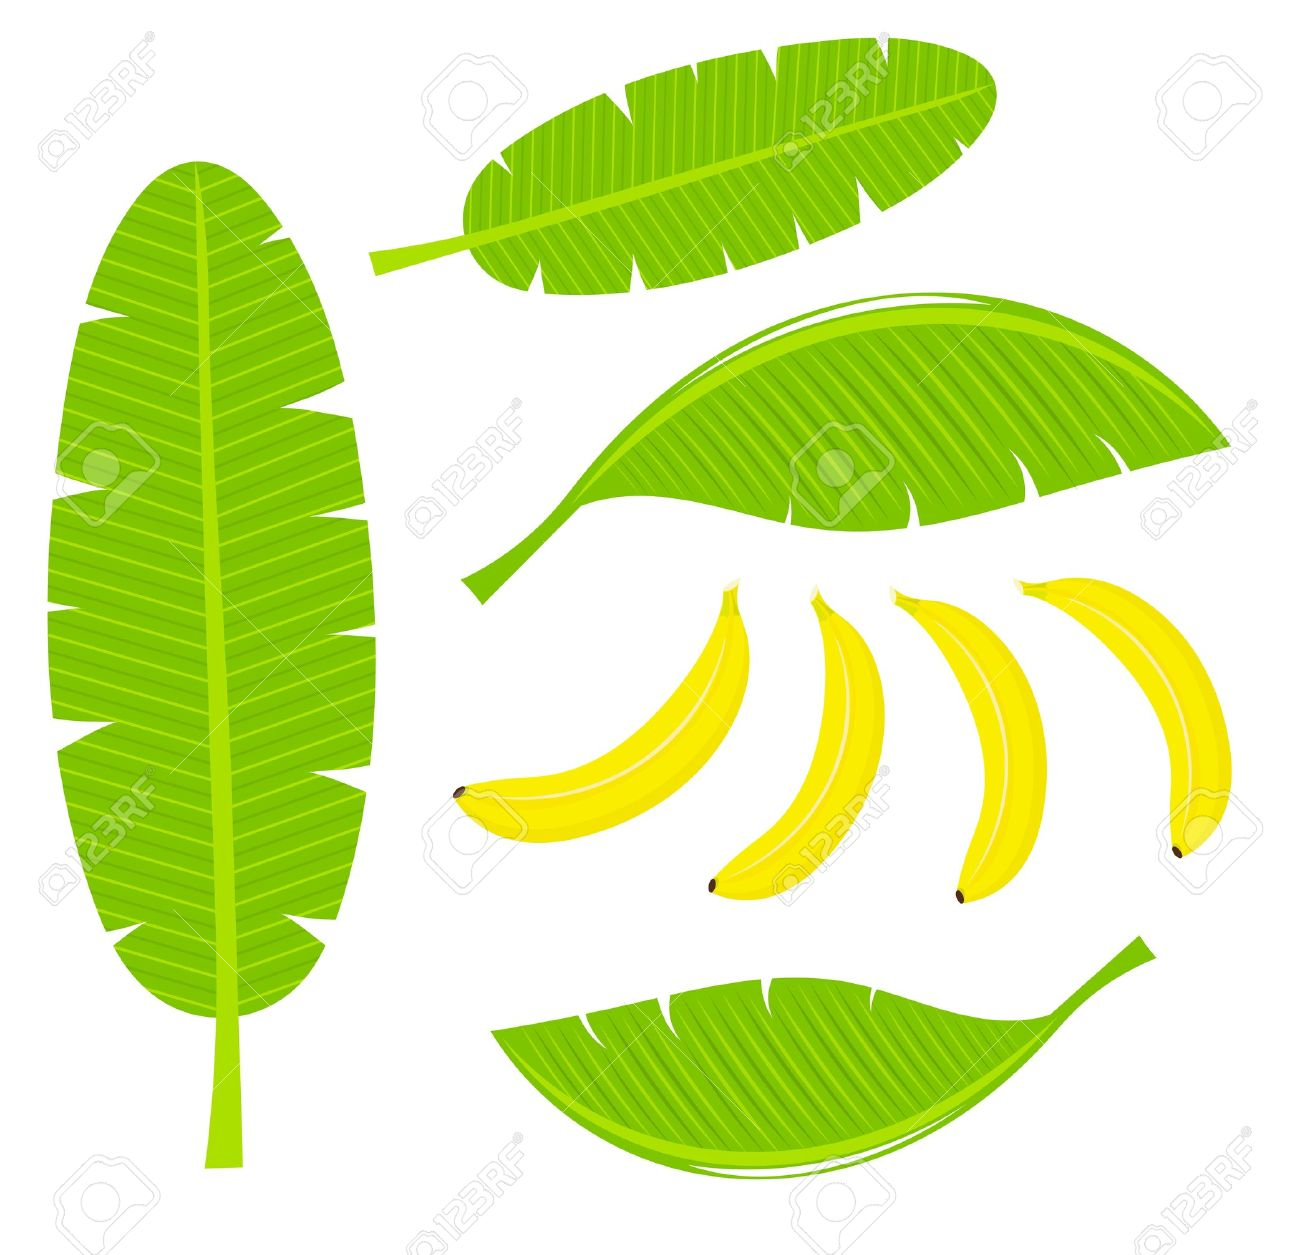 Banana Leaves And Fruits Illustration Royalty Free Cliparts.